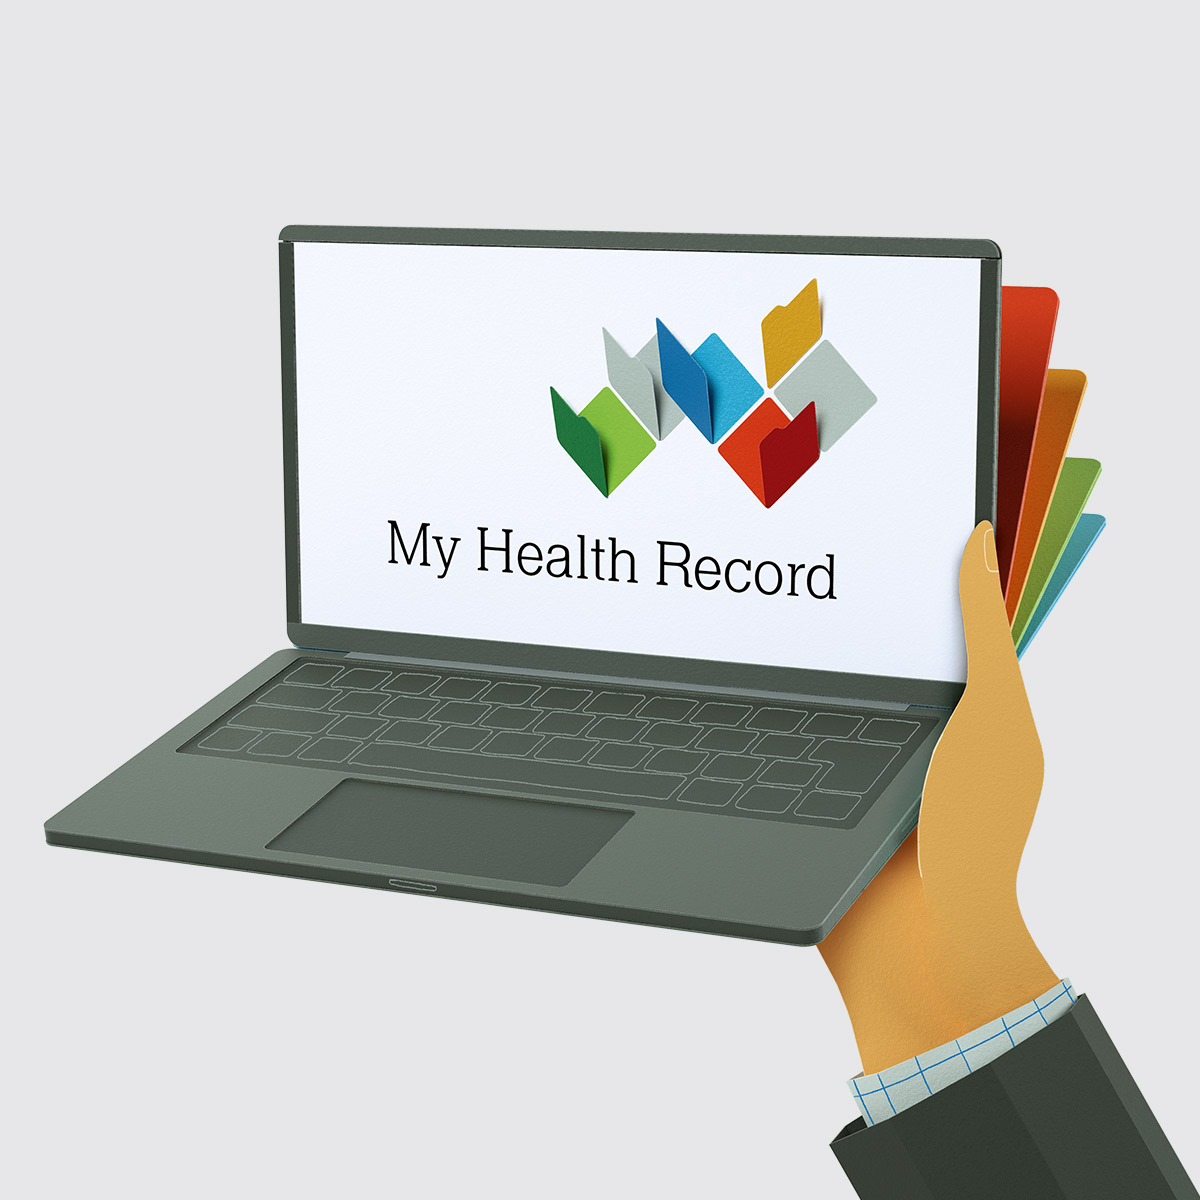 Increased use of My Health Record by healthcare providers